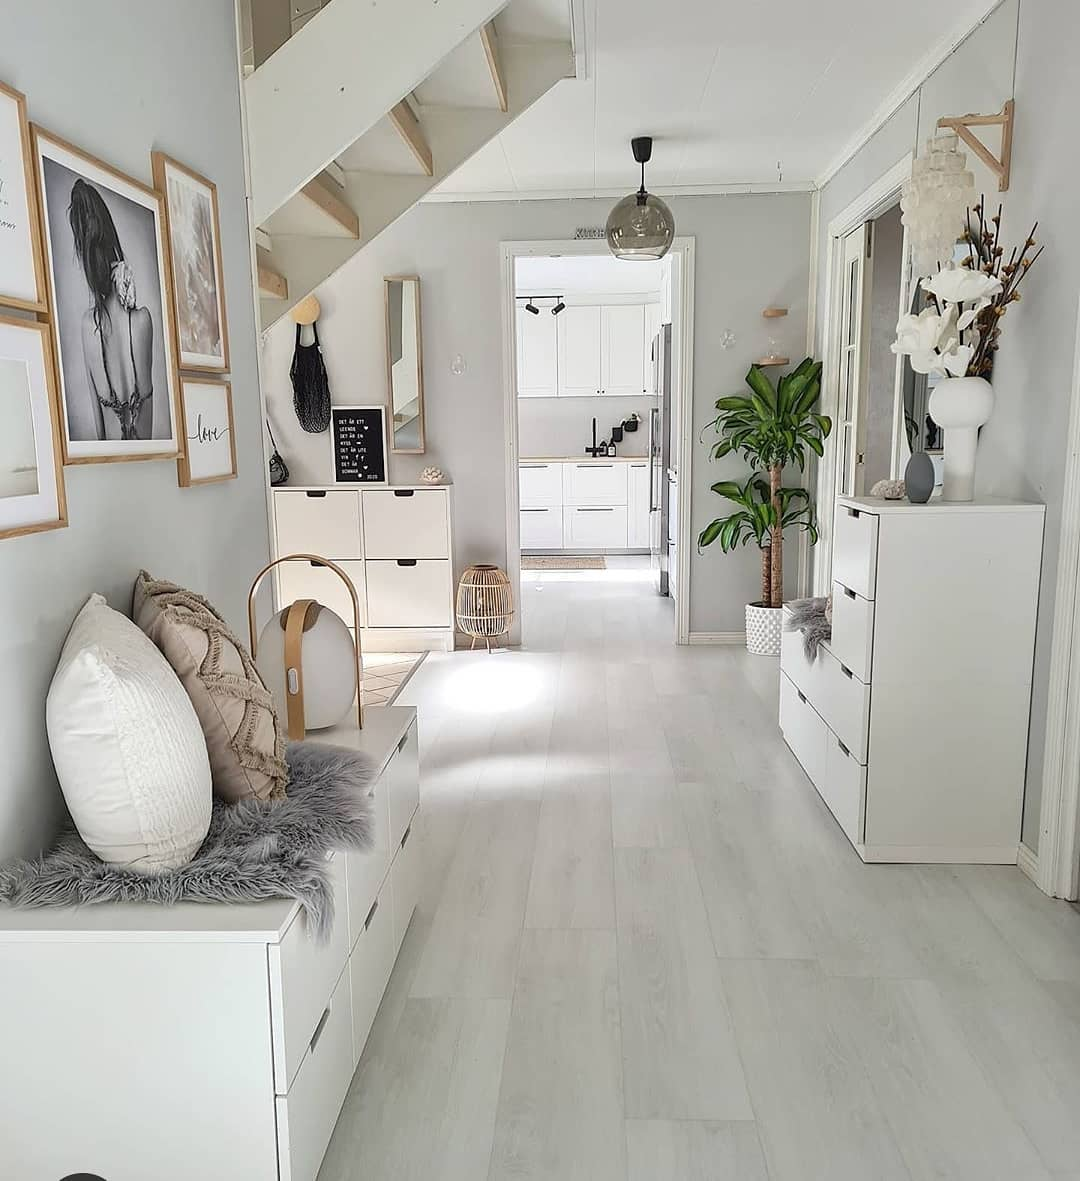 New Decor Trends for Home Designs and Ideas 2021 (156)